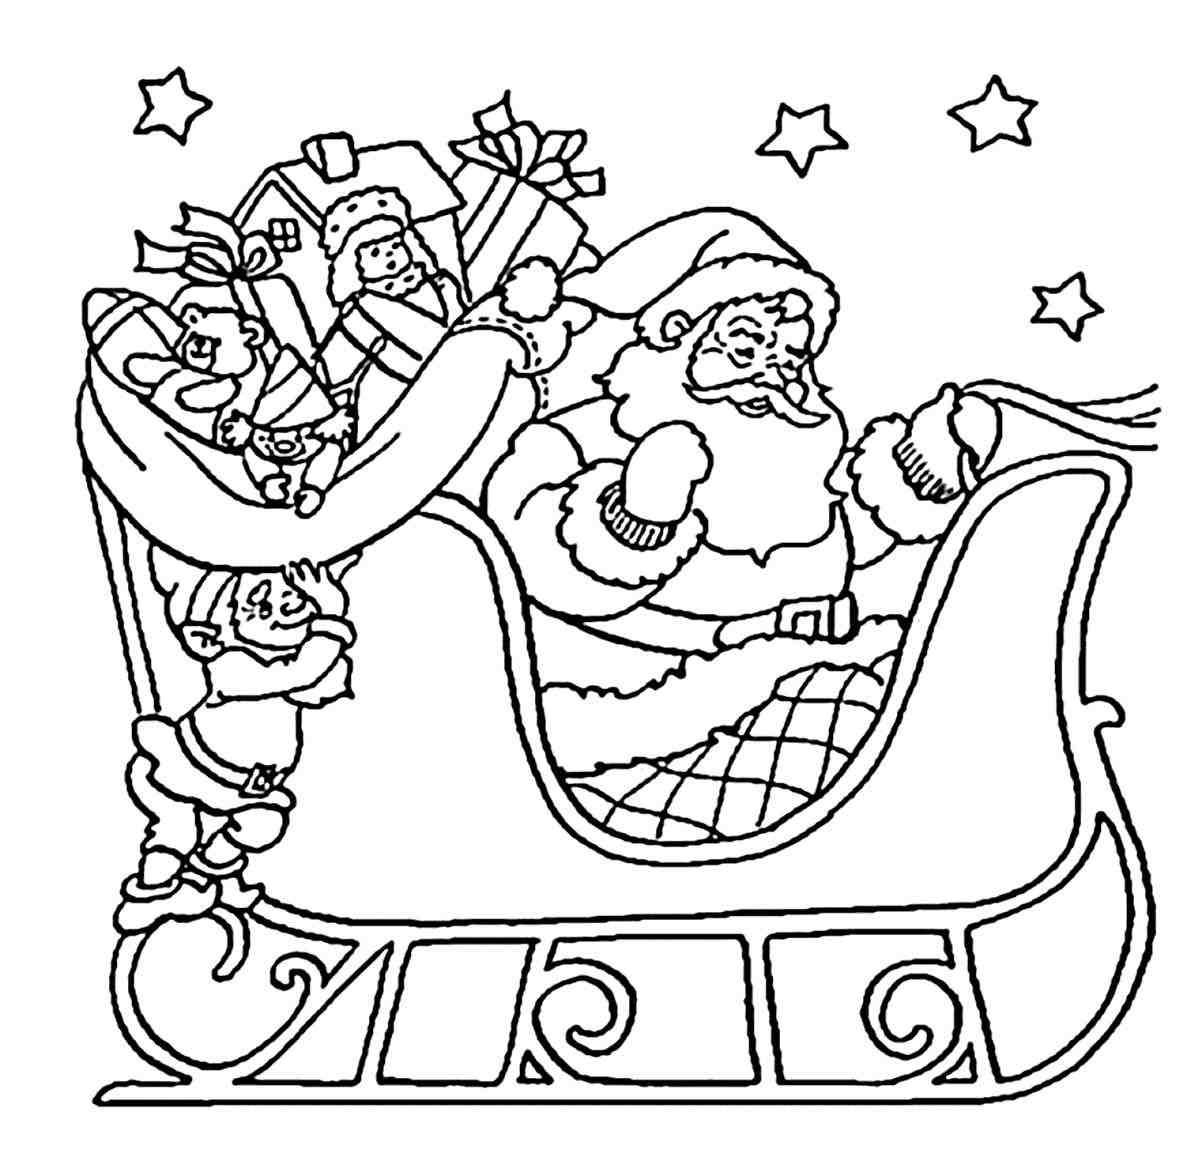 1202x1172 Printable Detailed Christmas Coloring Pages Free Coloring Pages